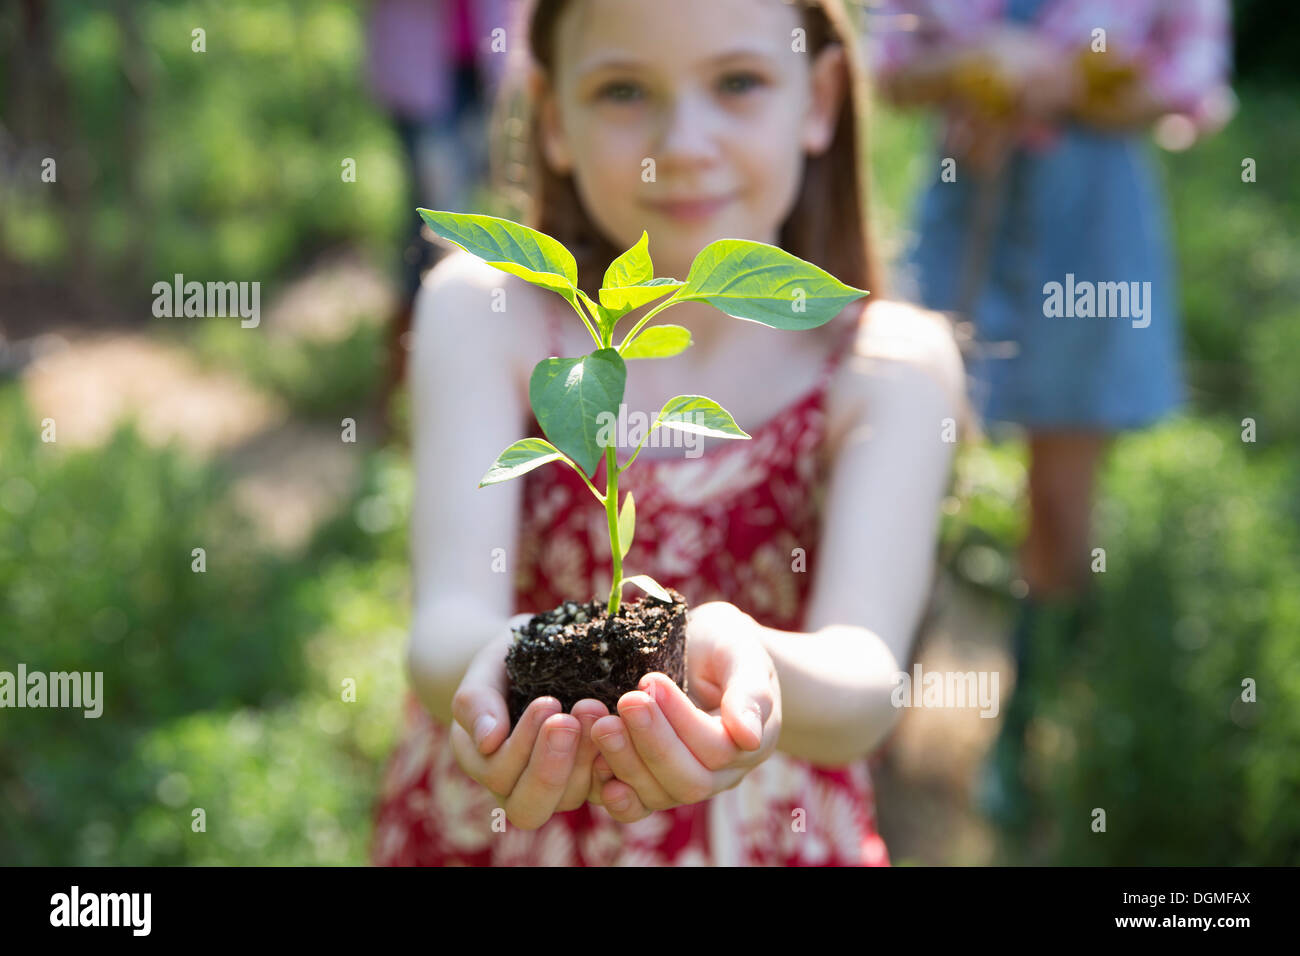 Garden. A young girl holding a young plant with green foliage and a healthy rootball in her hands. - Stock Image